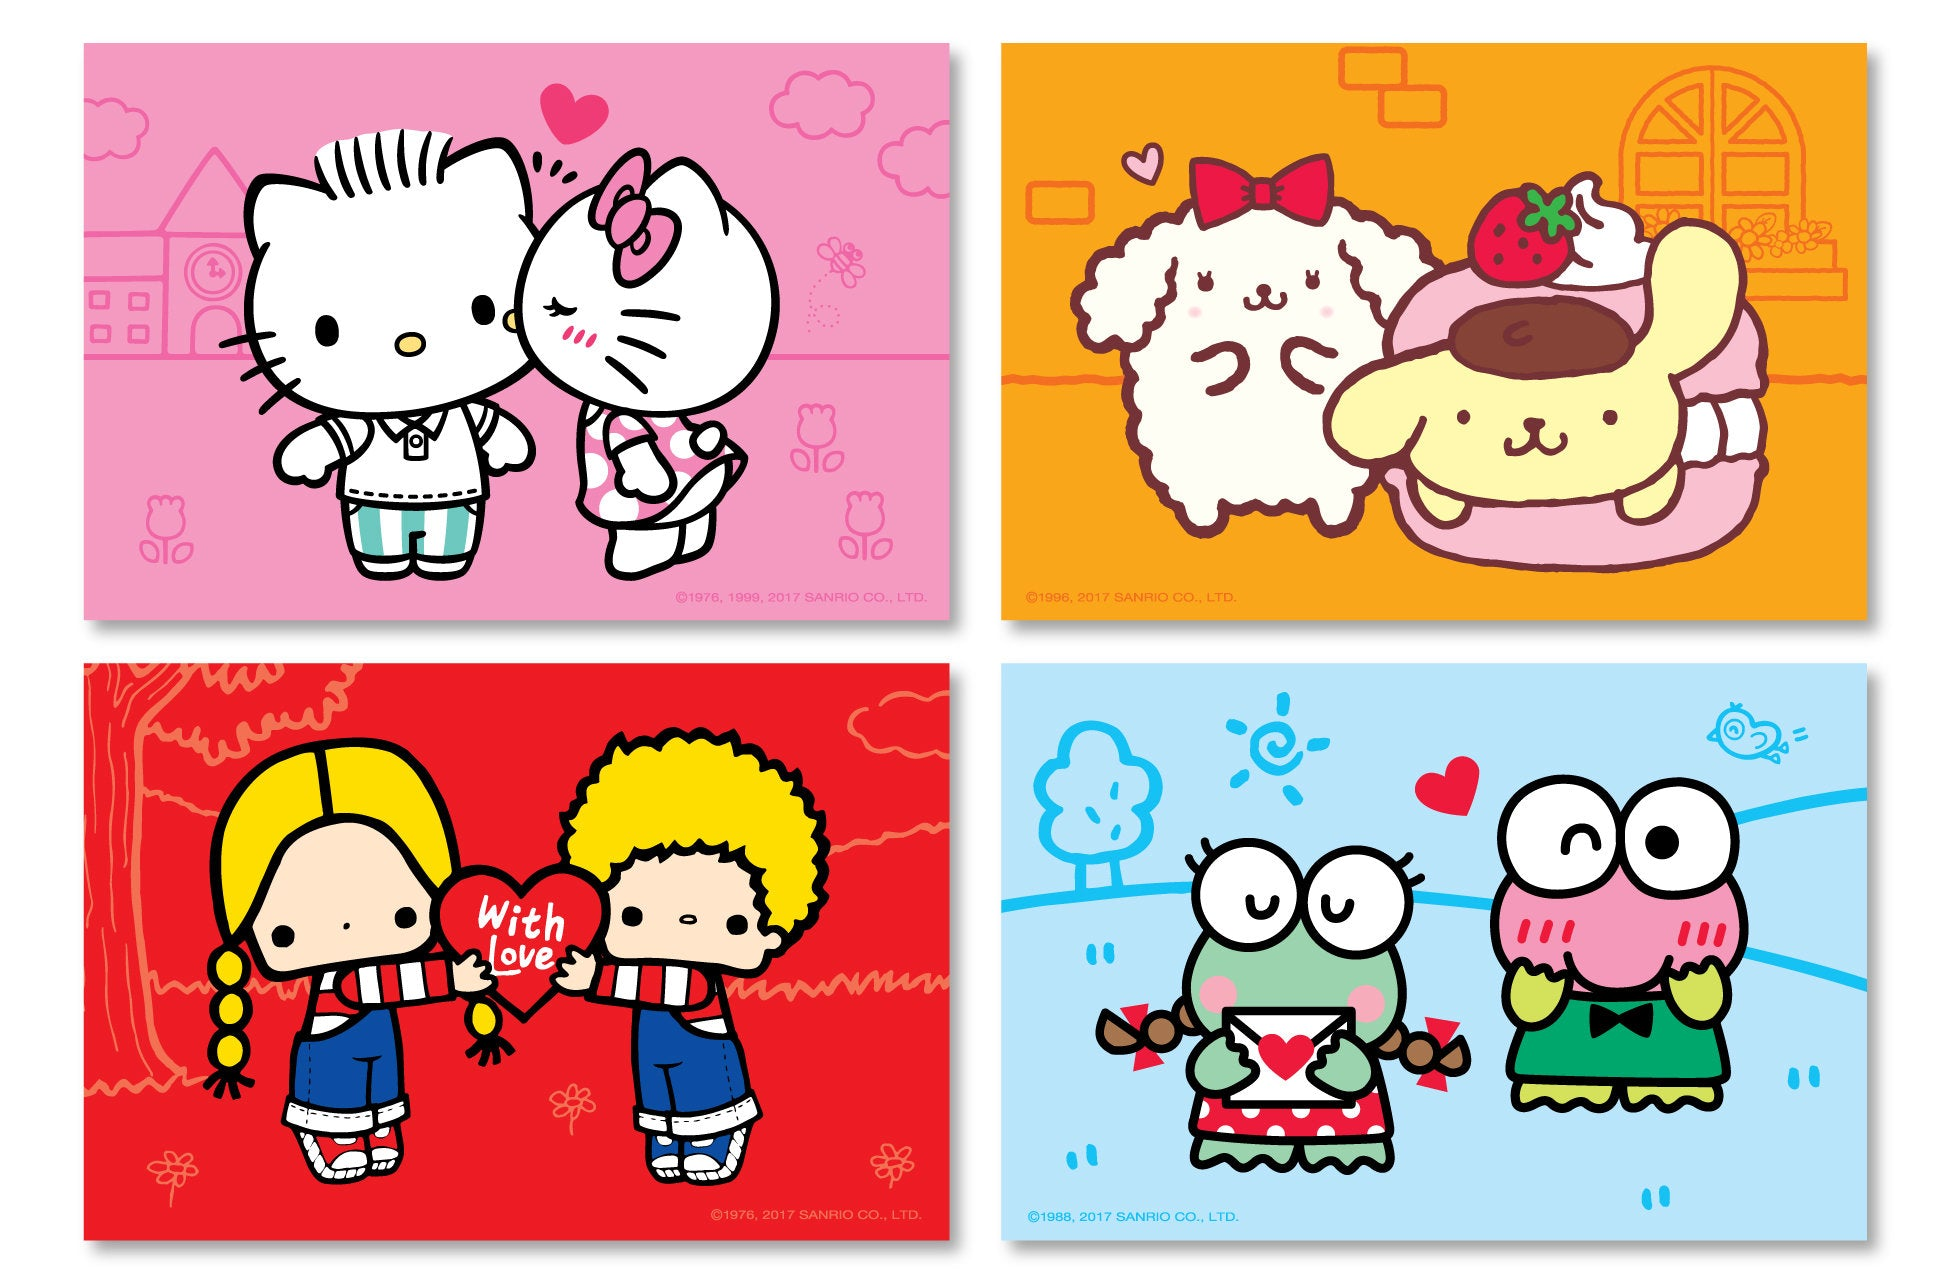 Sanrio 'Share the Love' Postcards